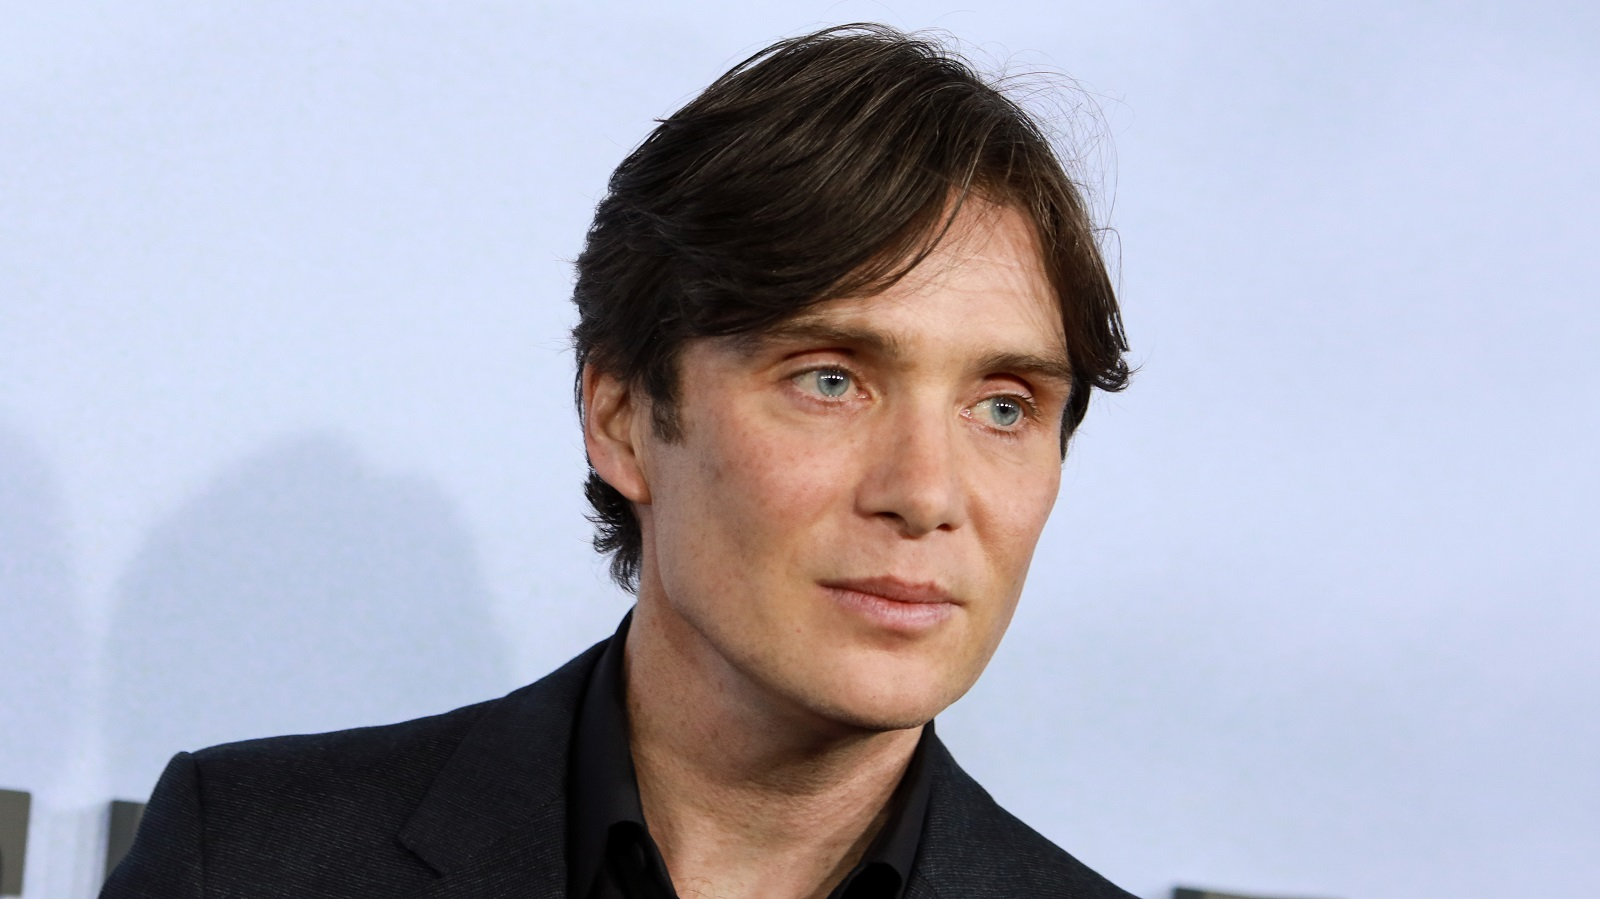 Actor Cillian Murphy poses for photographers.